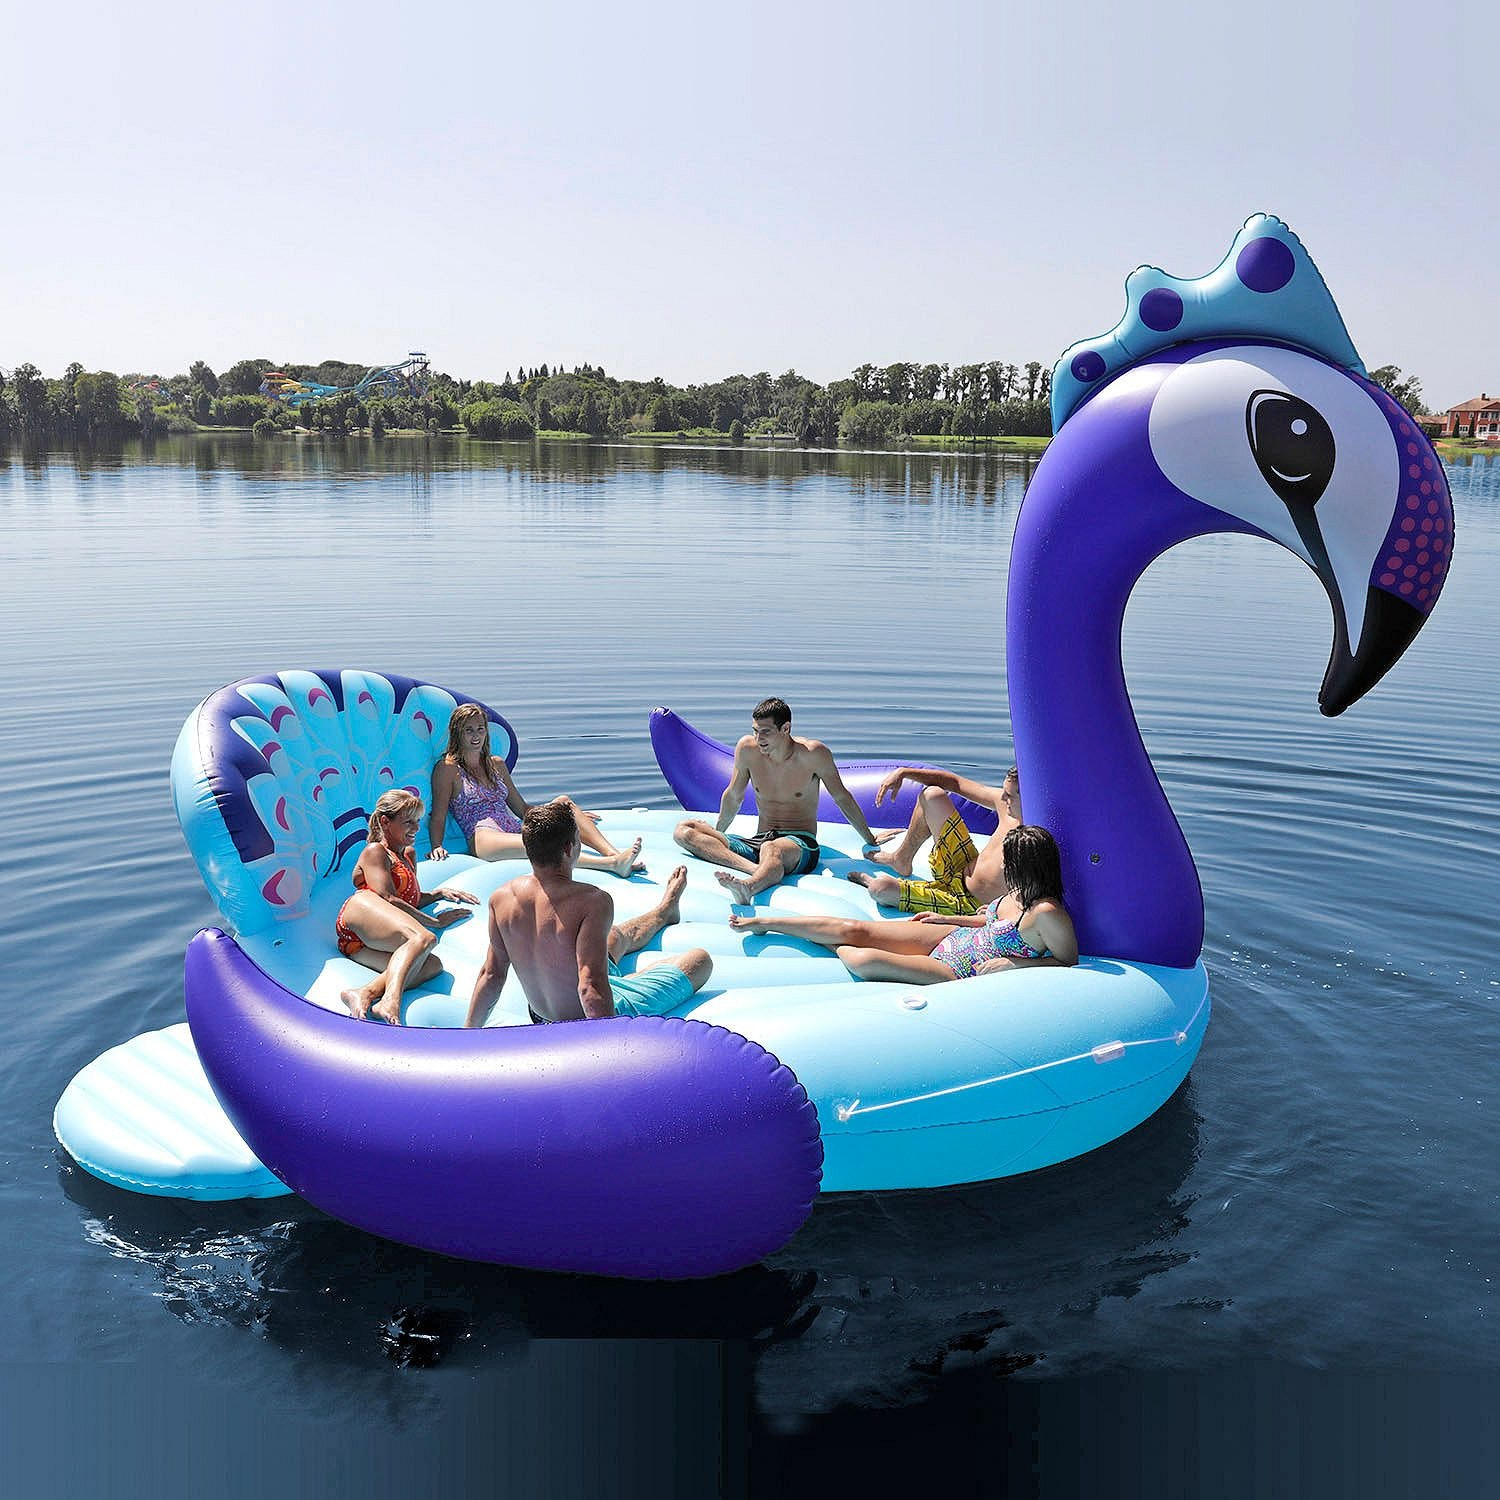 How Much Do Sams Party Bird Island Pool Floats Cost Not A Lot If You Split It